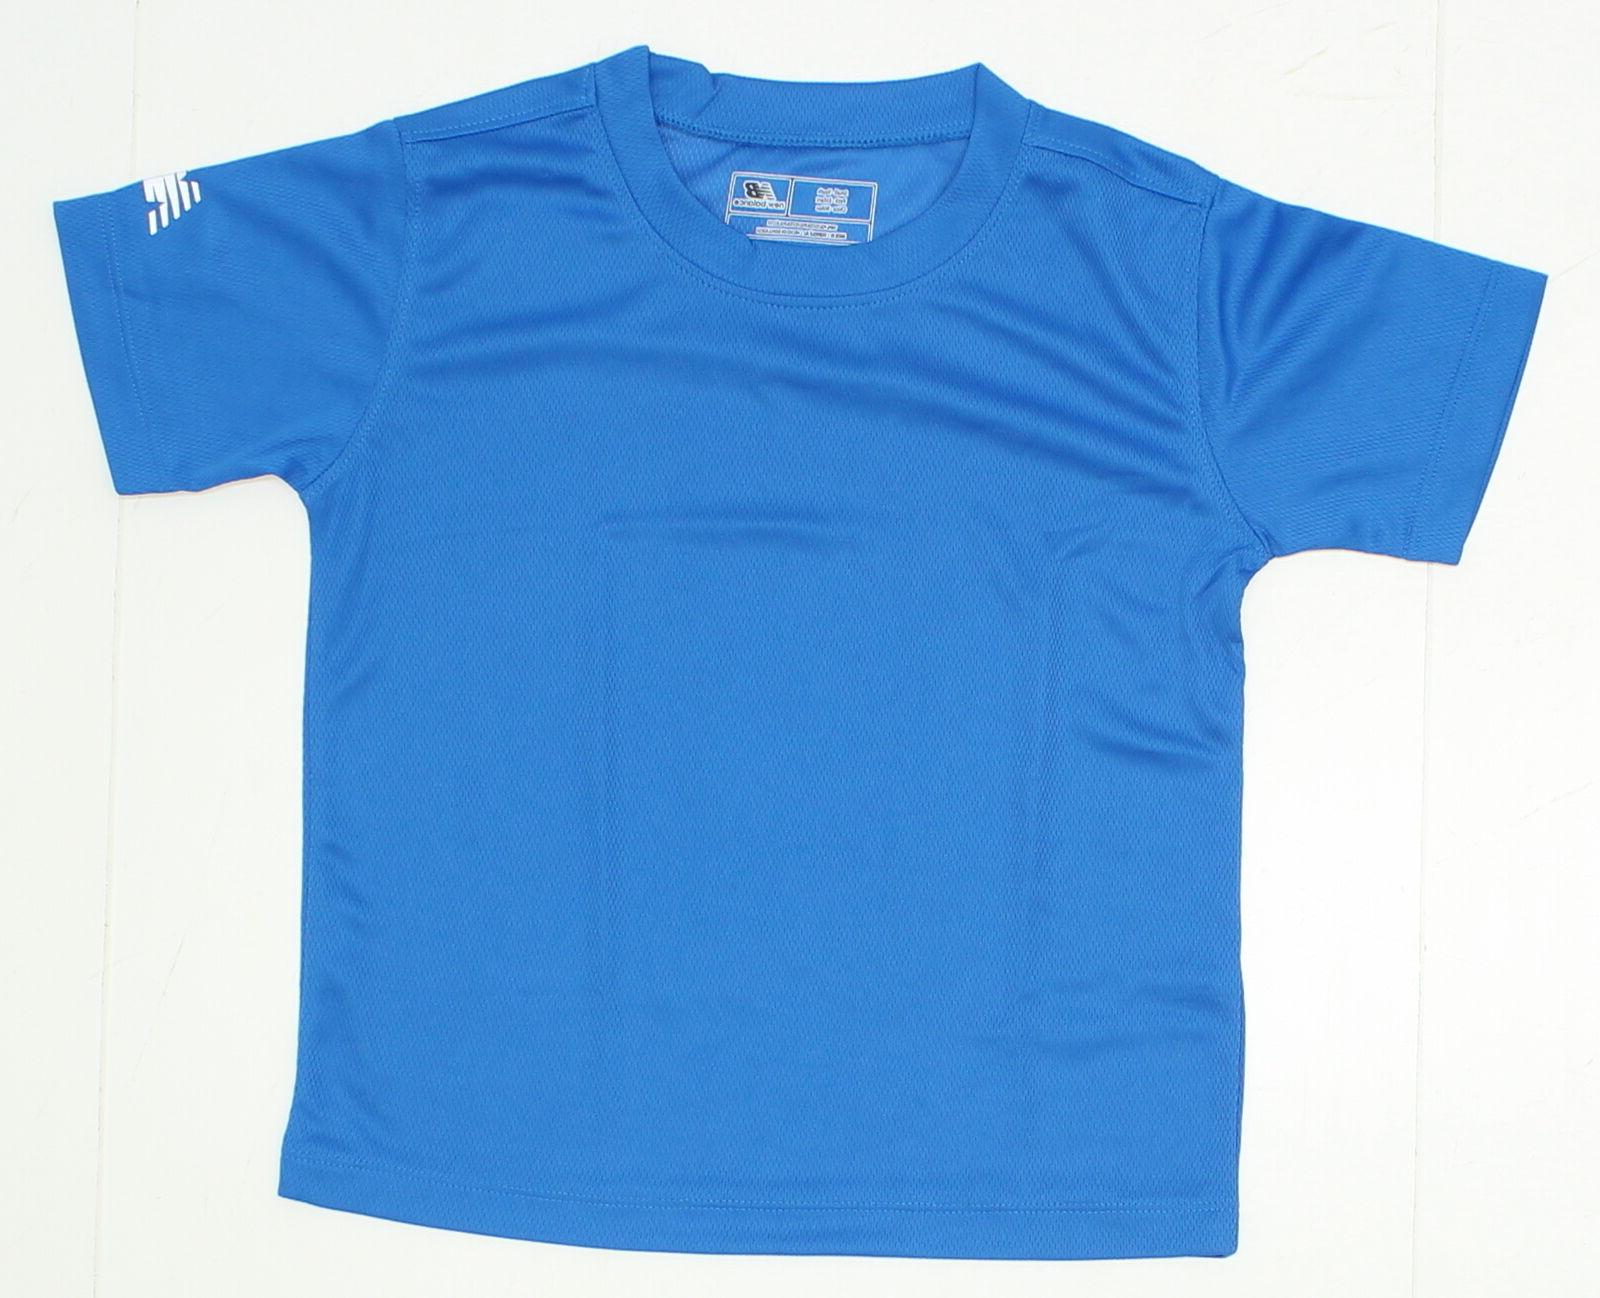 new youth performance mini mesh t shirt